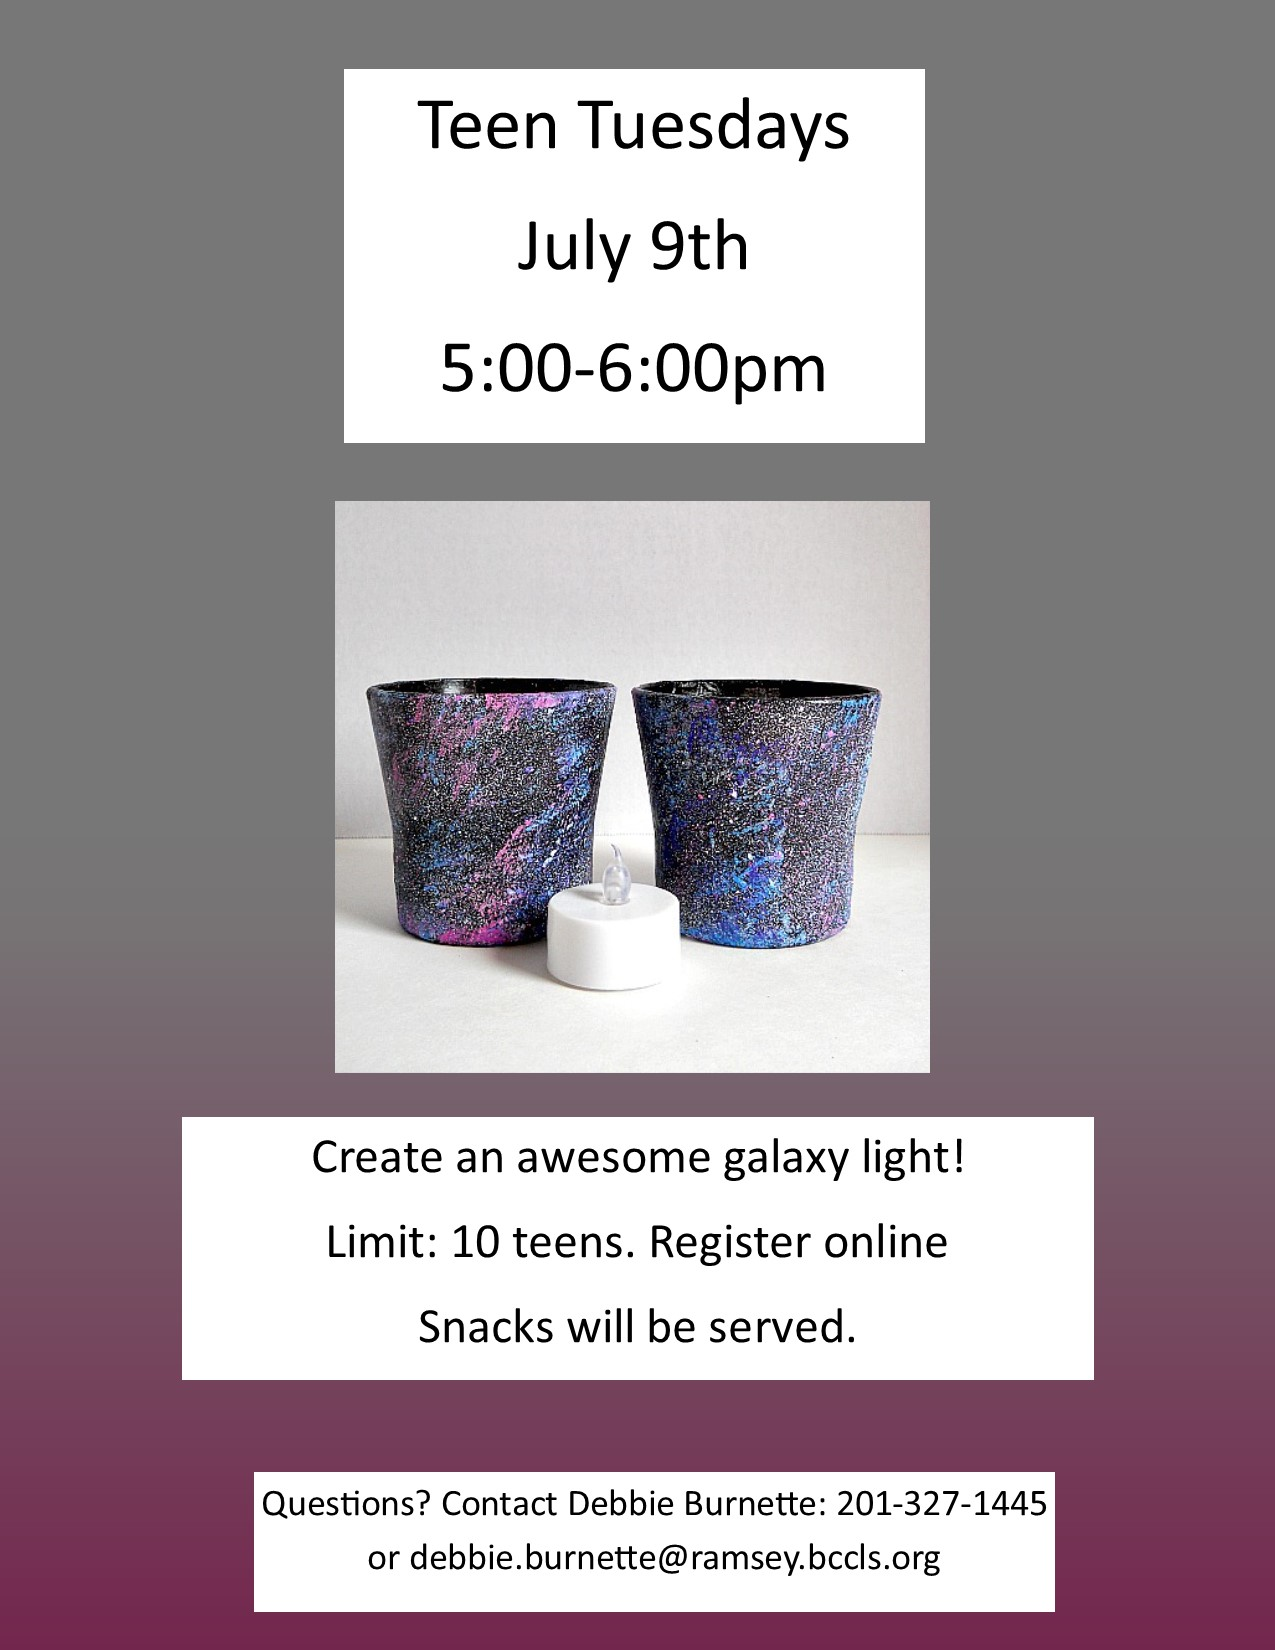 Awesome galaxy lights on Teen Tuesday!